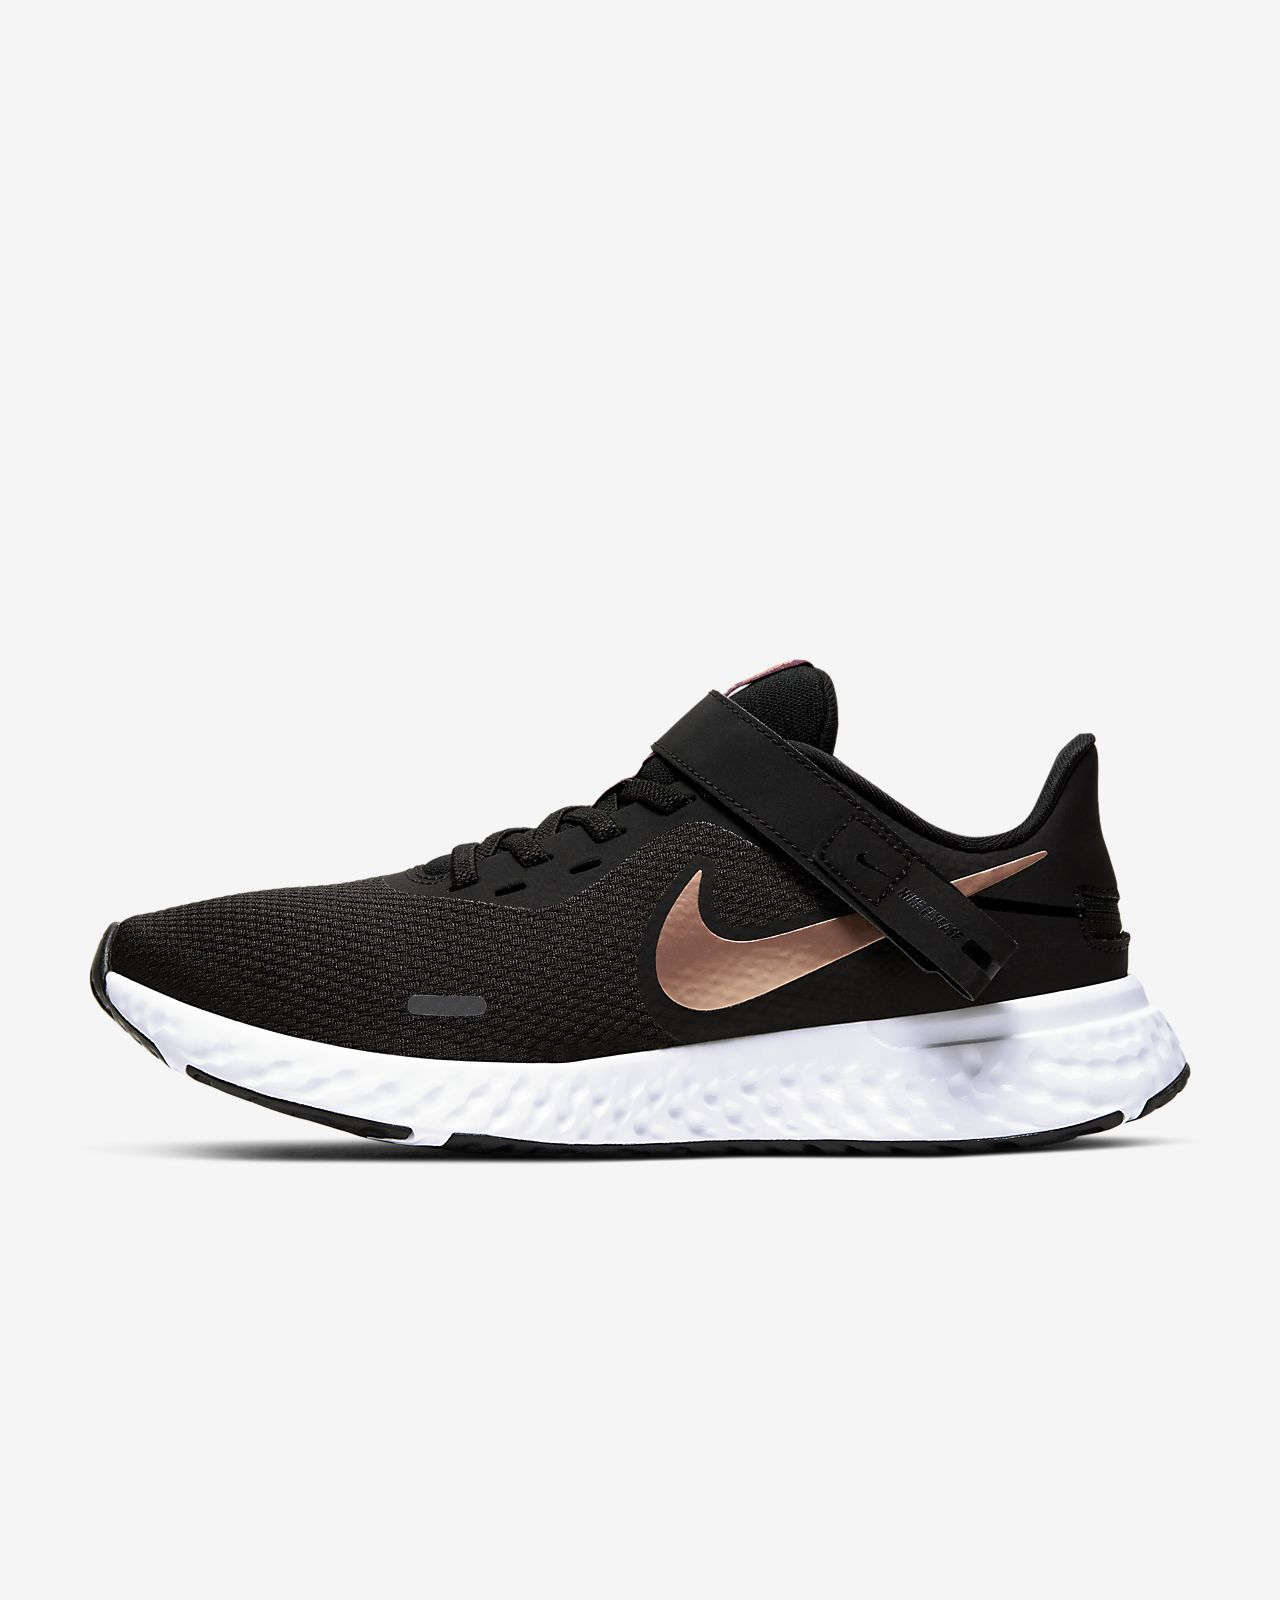 chaussures nike femmes 36 5